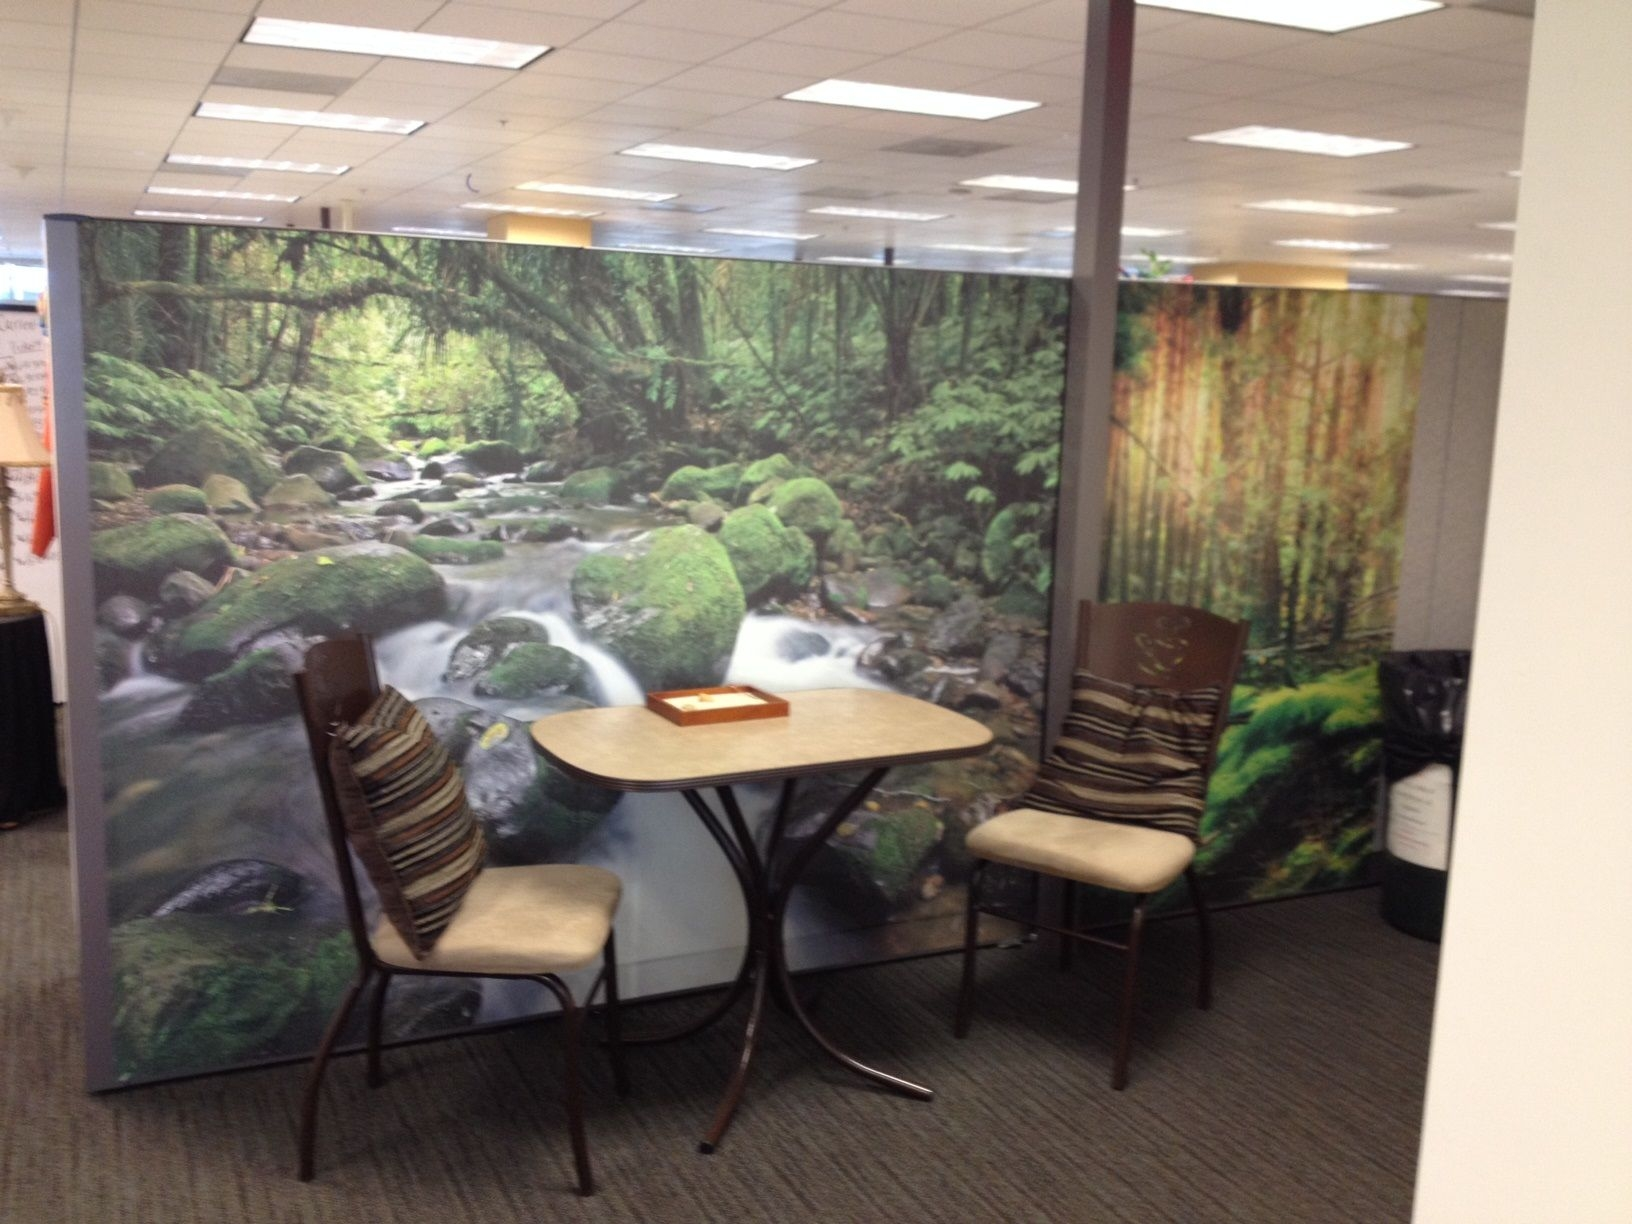 Office meeting place decorate by Dream Cubicle Wallpaper